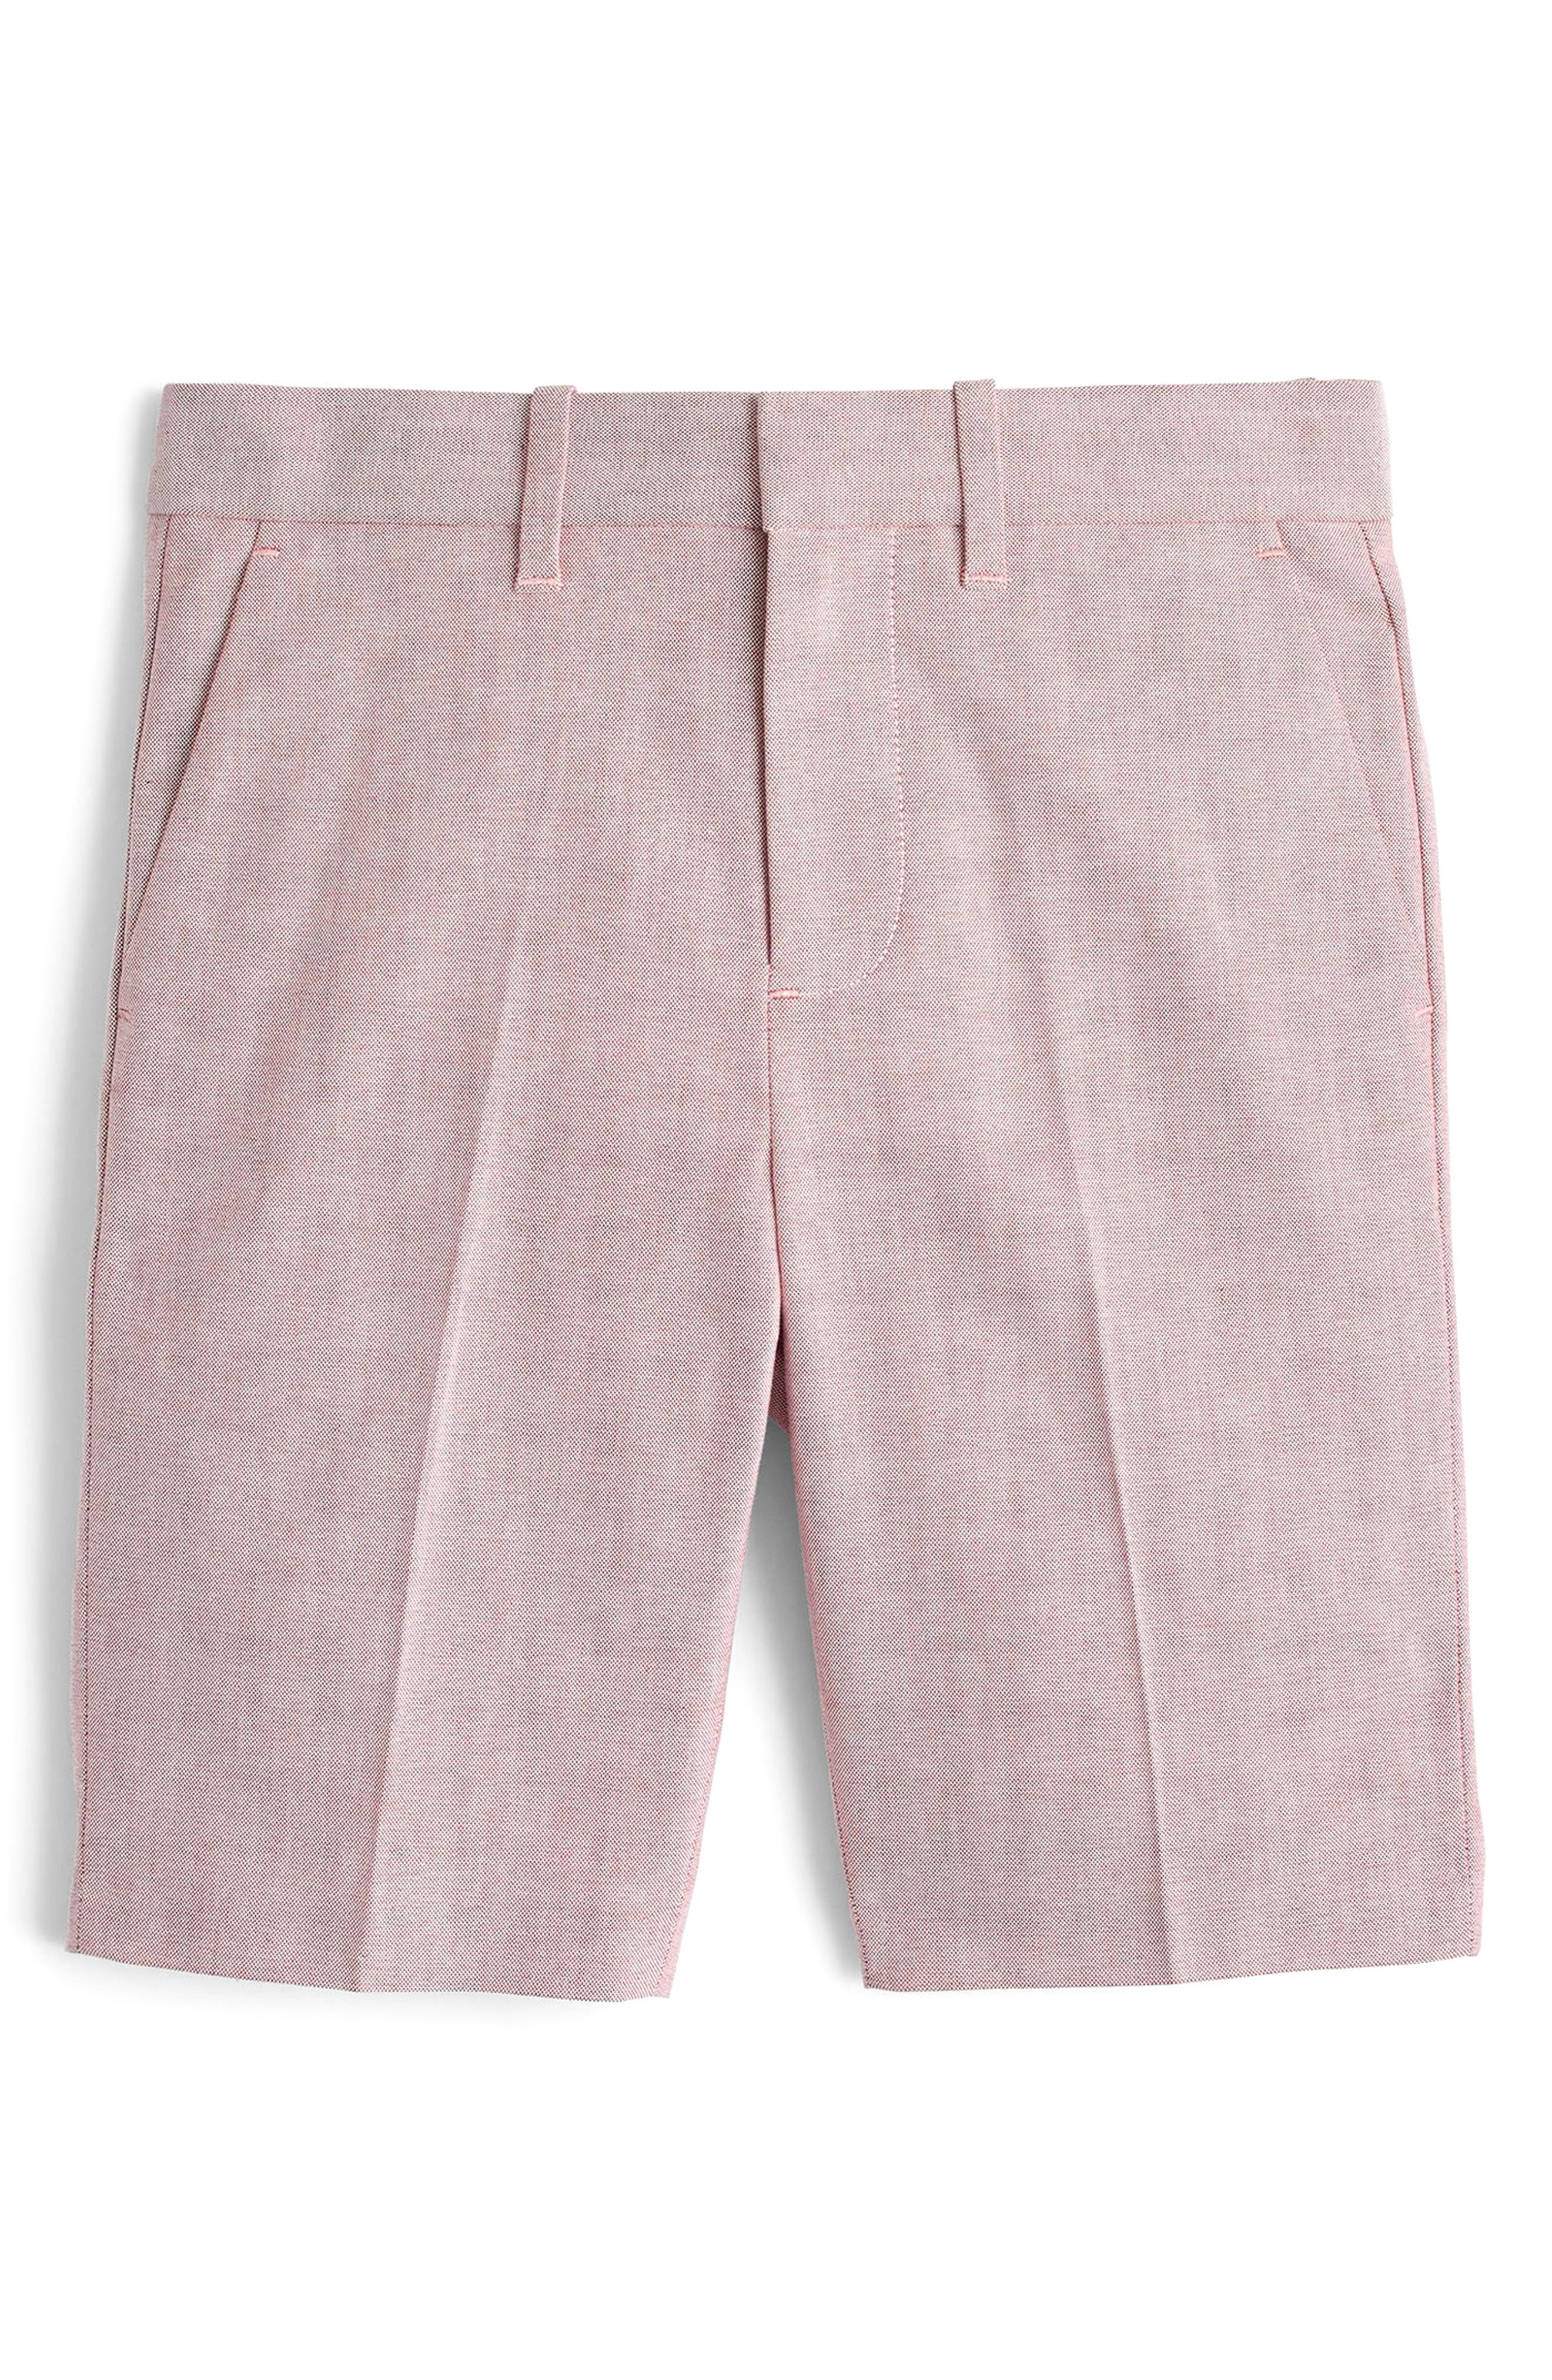 Ludlow Stretch Oxford Suit Shorts,                         Main,                         color, Light Red